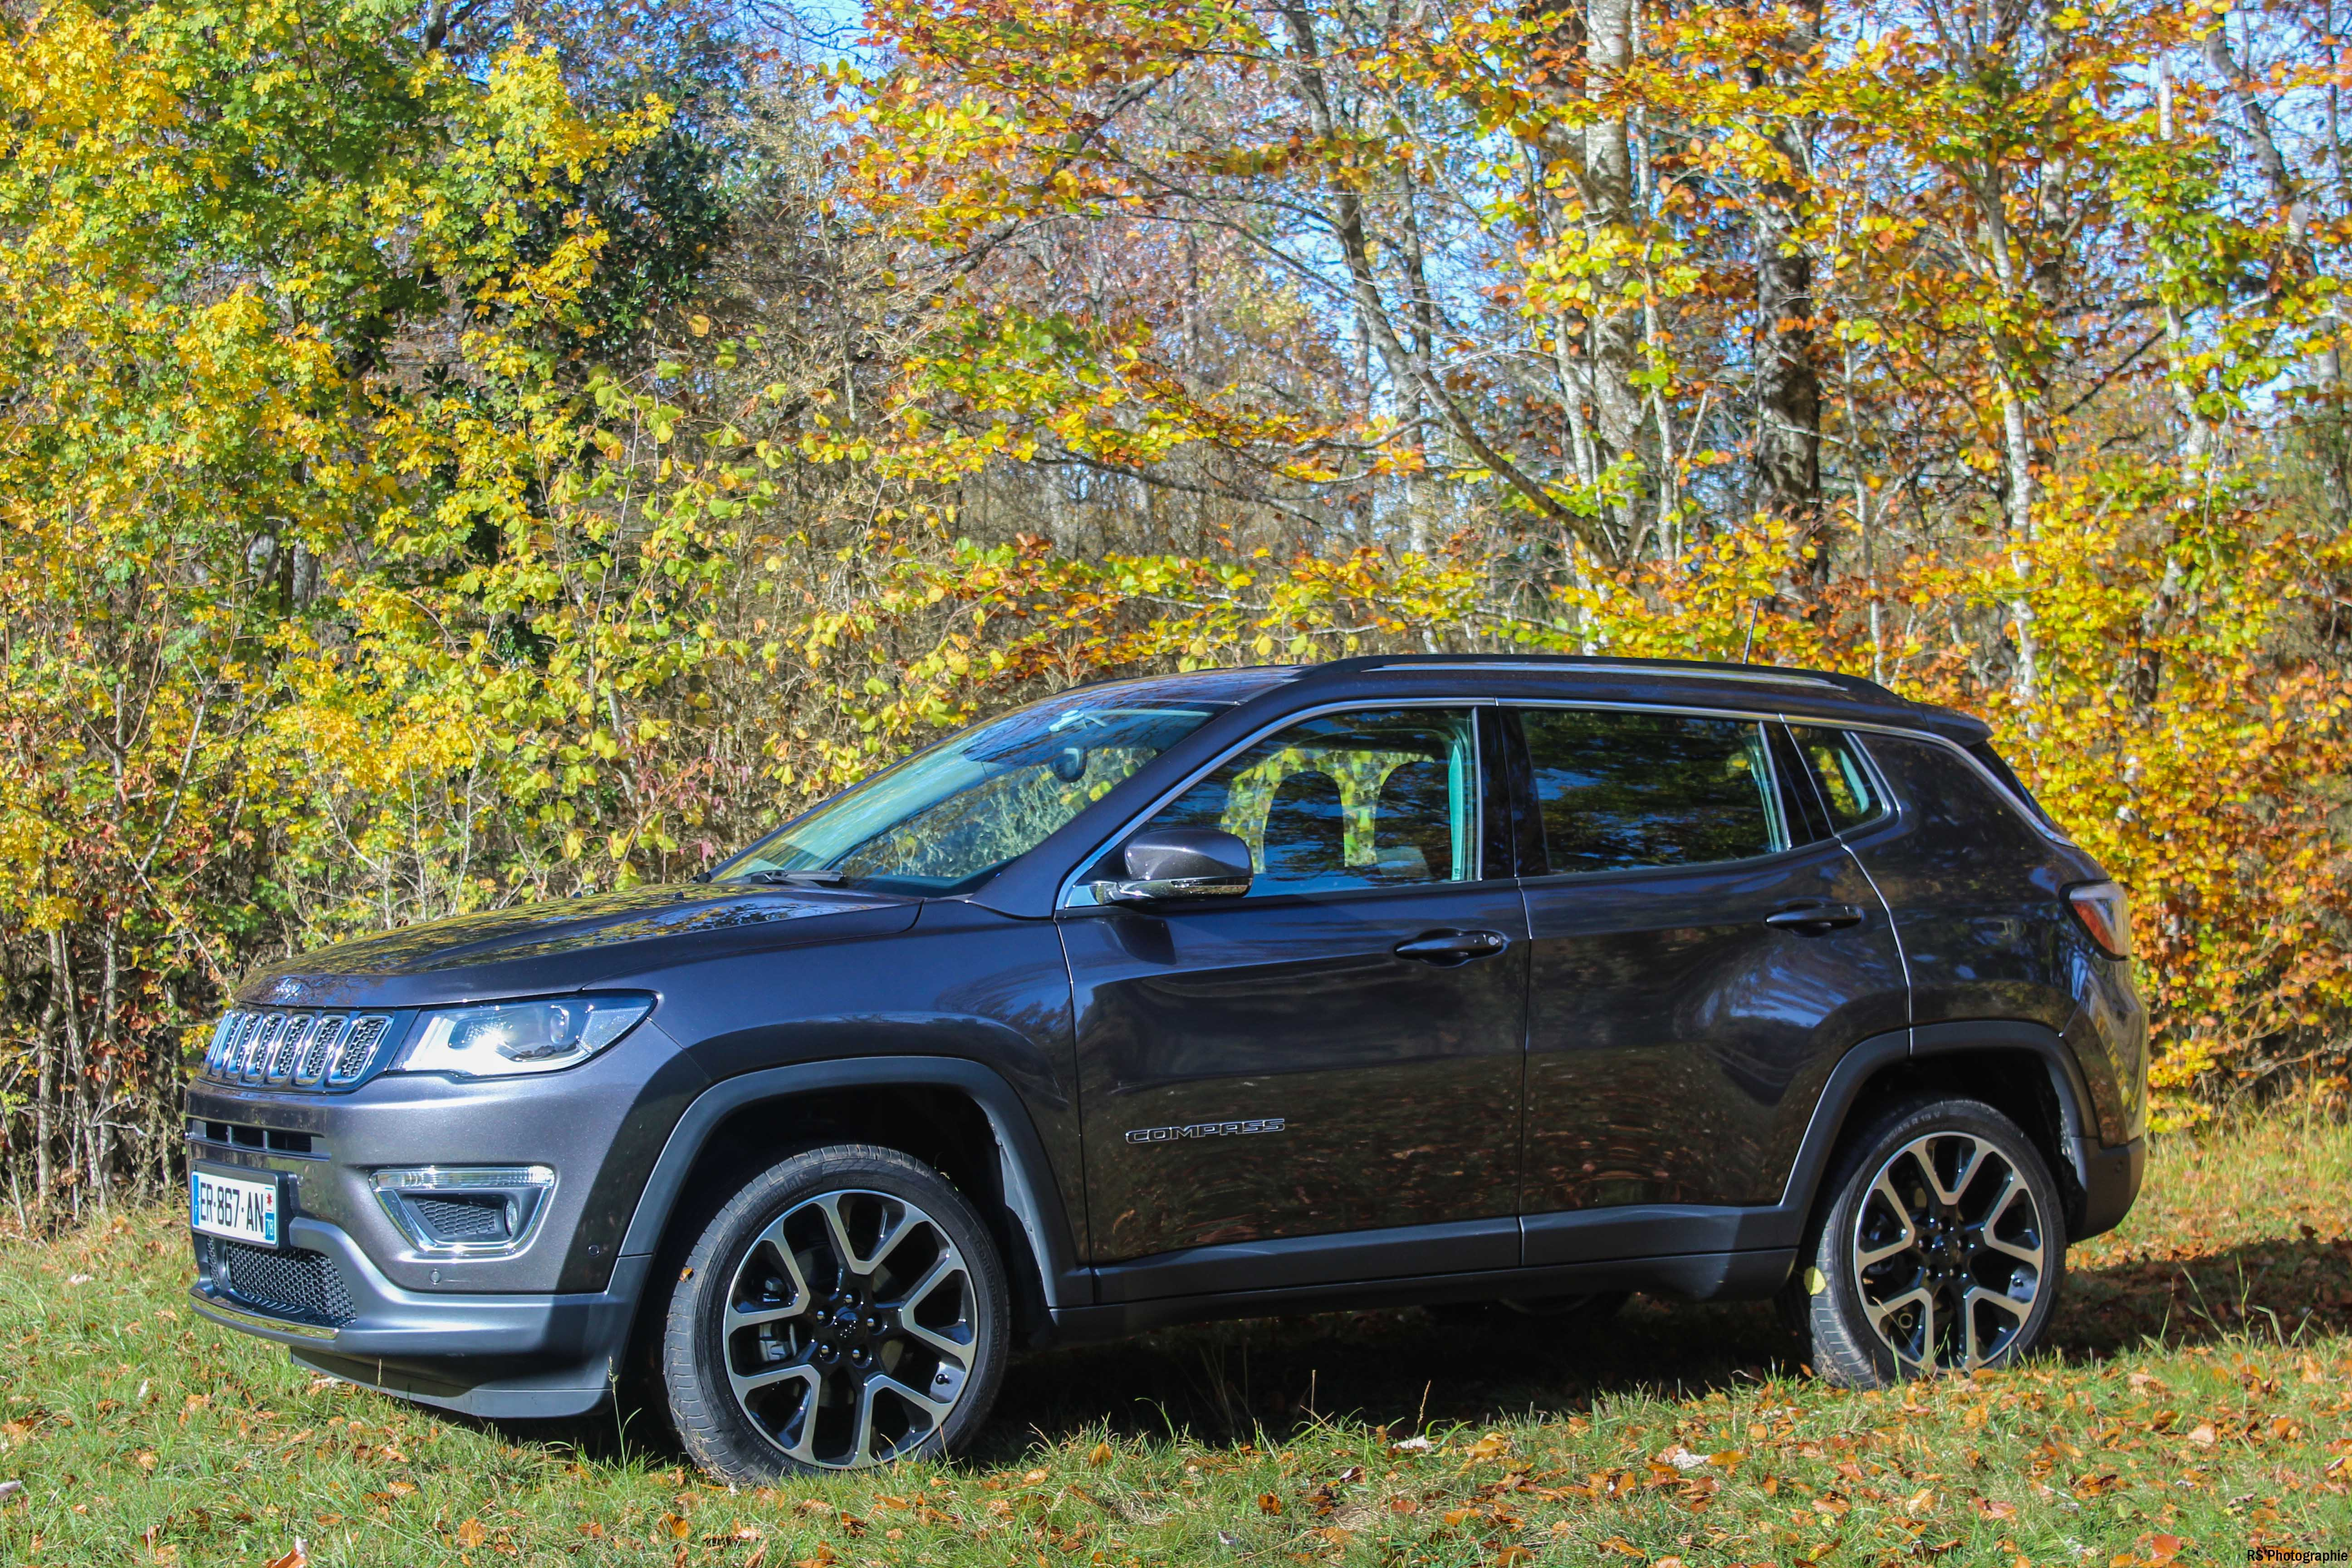 jeepcompass24-jeep-compass-avant-front-Arnaud Demasier-RSPhotographie